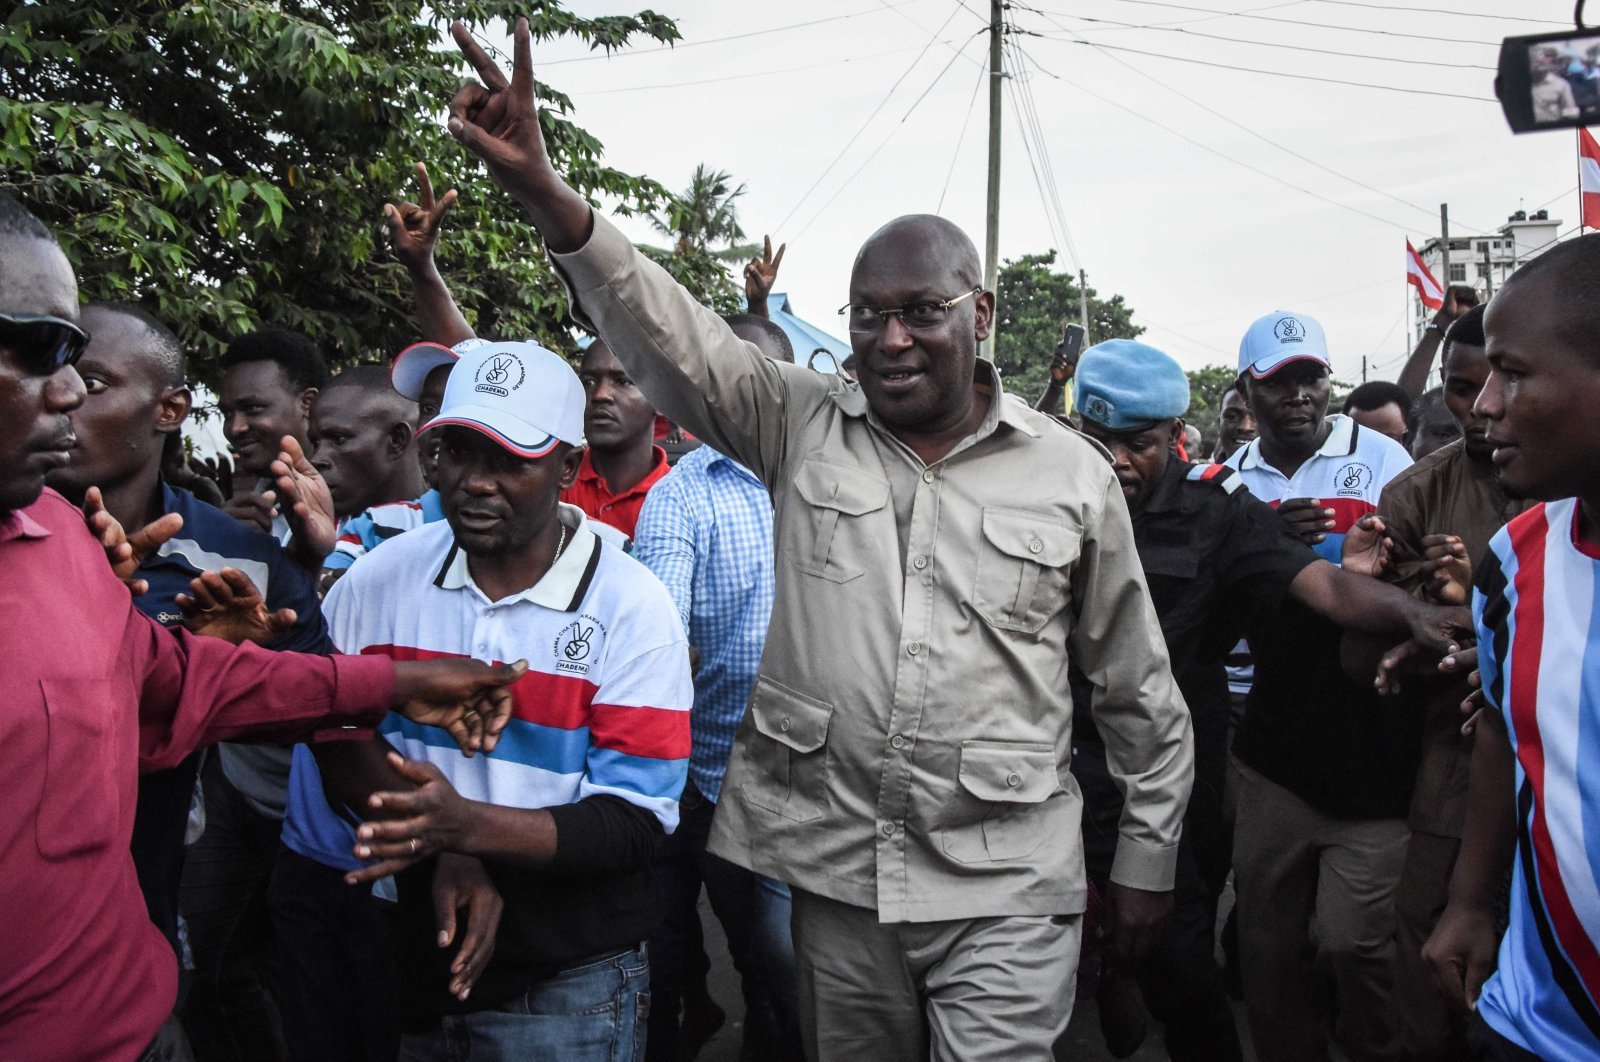 Tanzania Chadema party Chairman Freeman Mbowe (C) arrives at the party's headquarters after being released from Segerea prison in Dar es Salaam, Tanzania, March 14, 2020.  (AFP Photo)